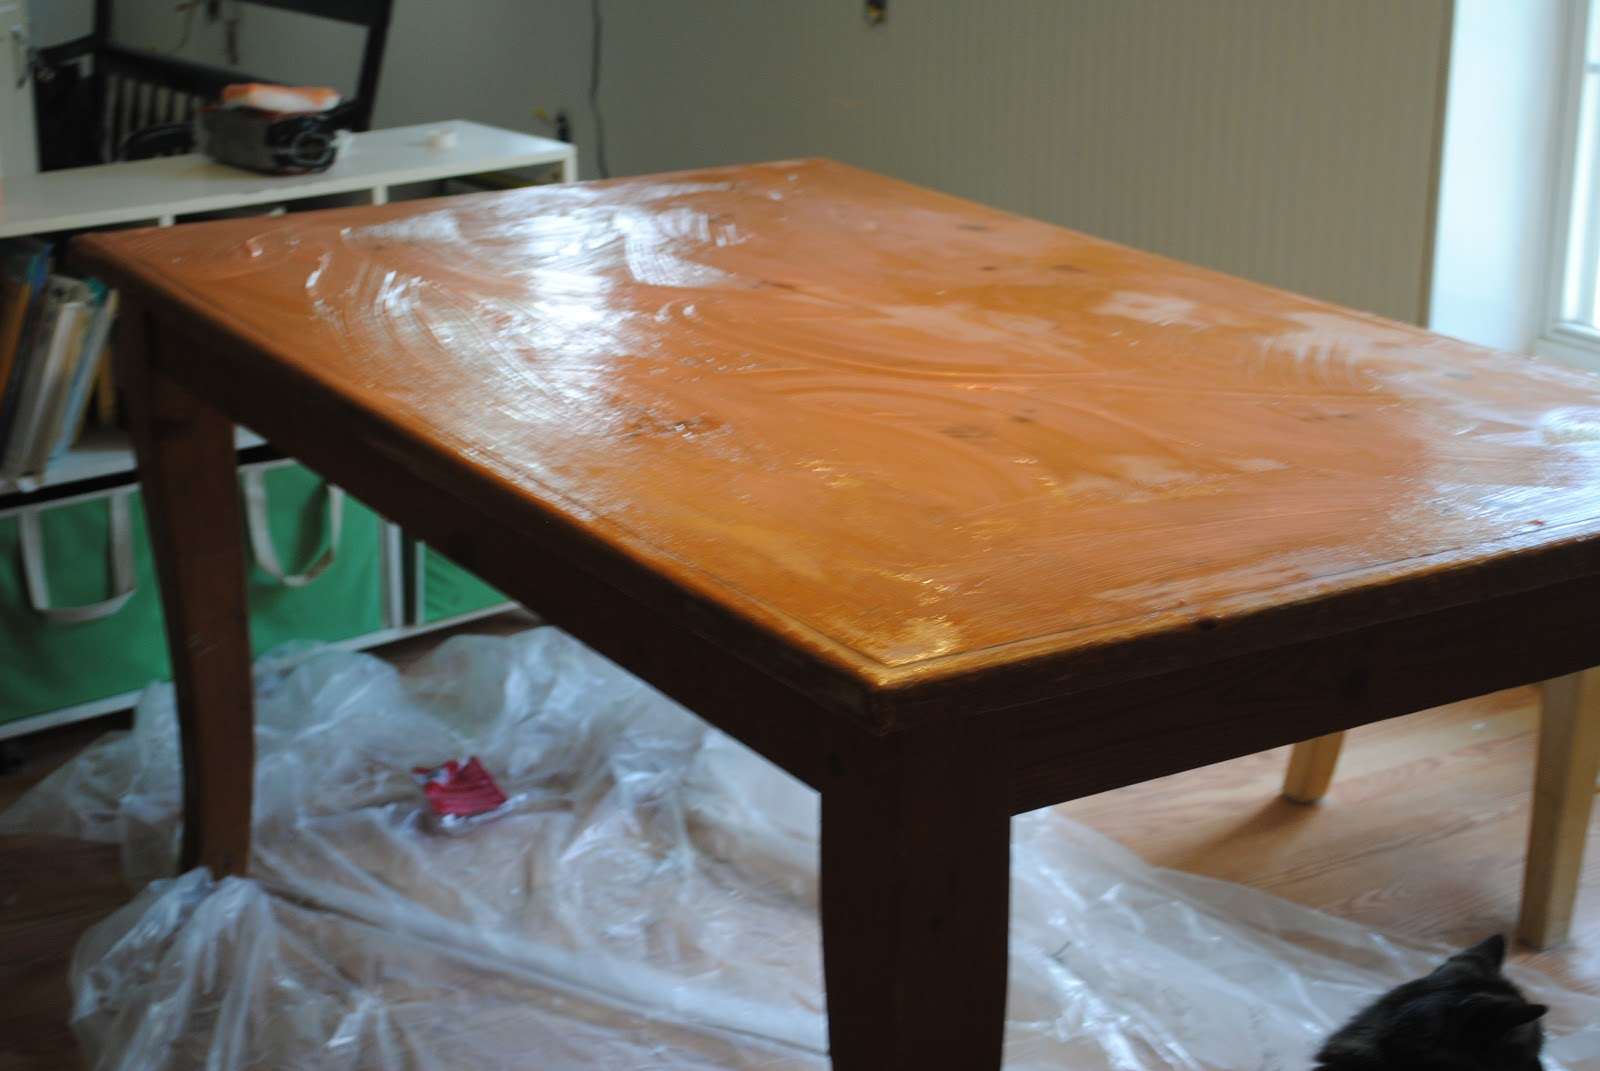 refinish old knotty pine dining table refinishing kitchen table and since I was working inside I used that orange citrus remover to prevent killing myself and my animals in the process of refinishing